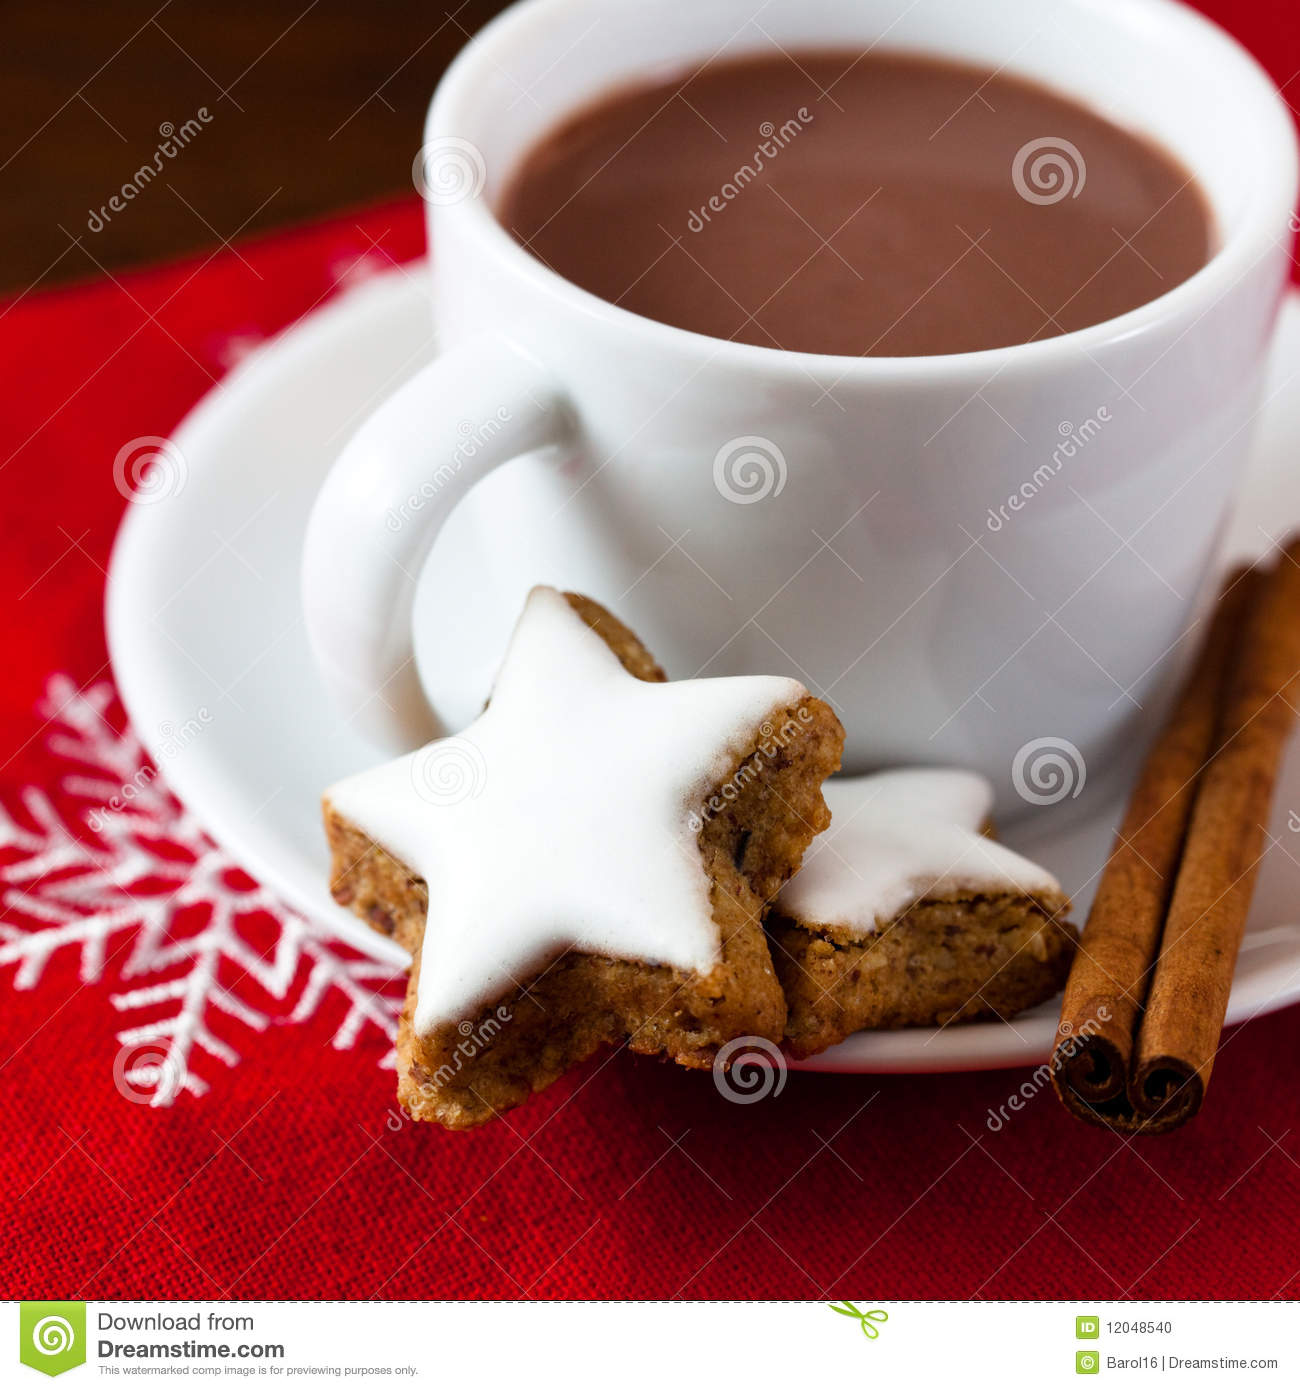 Red Cup Hot Chocolate Animation